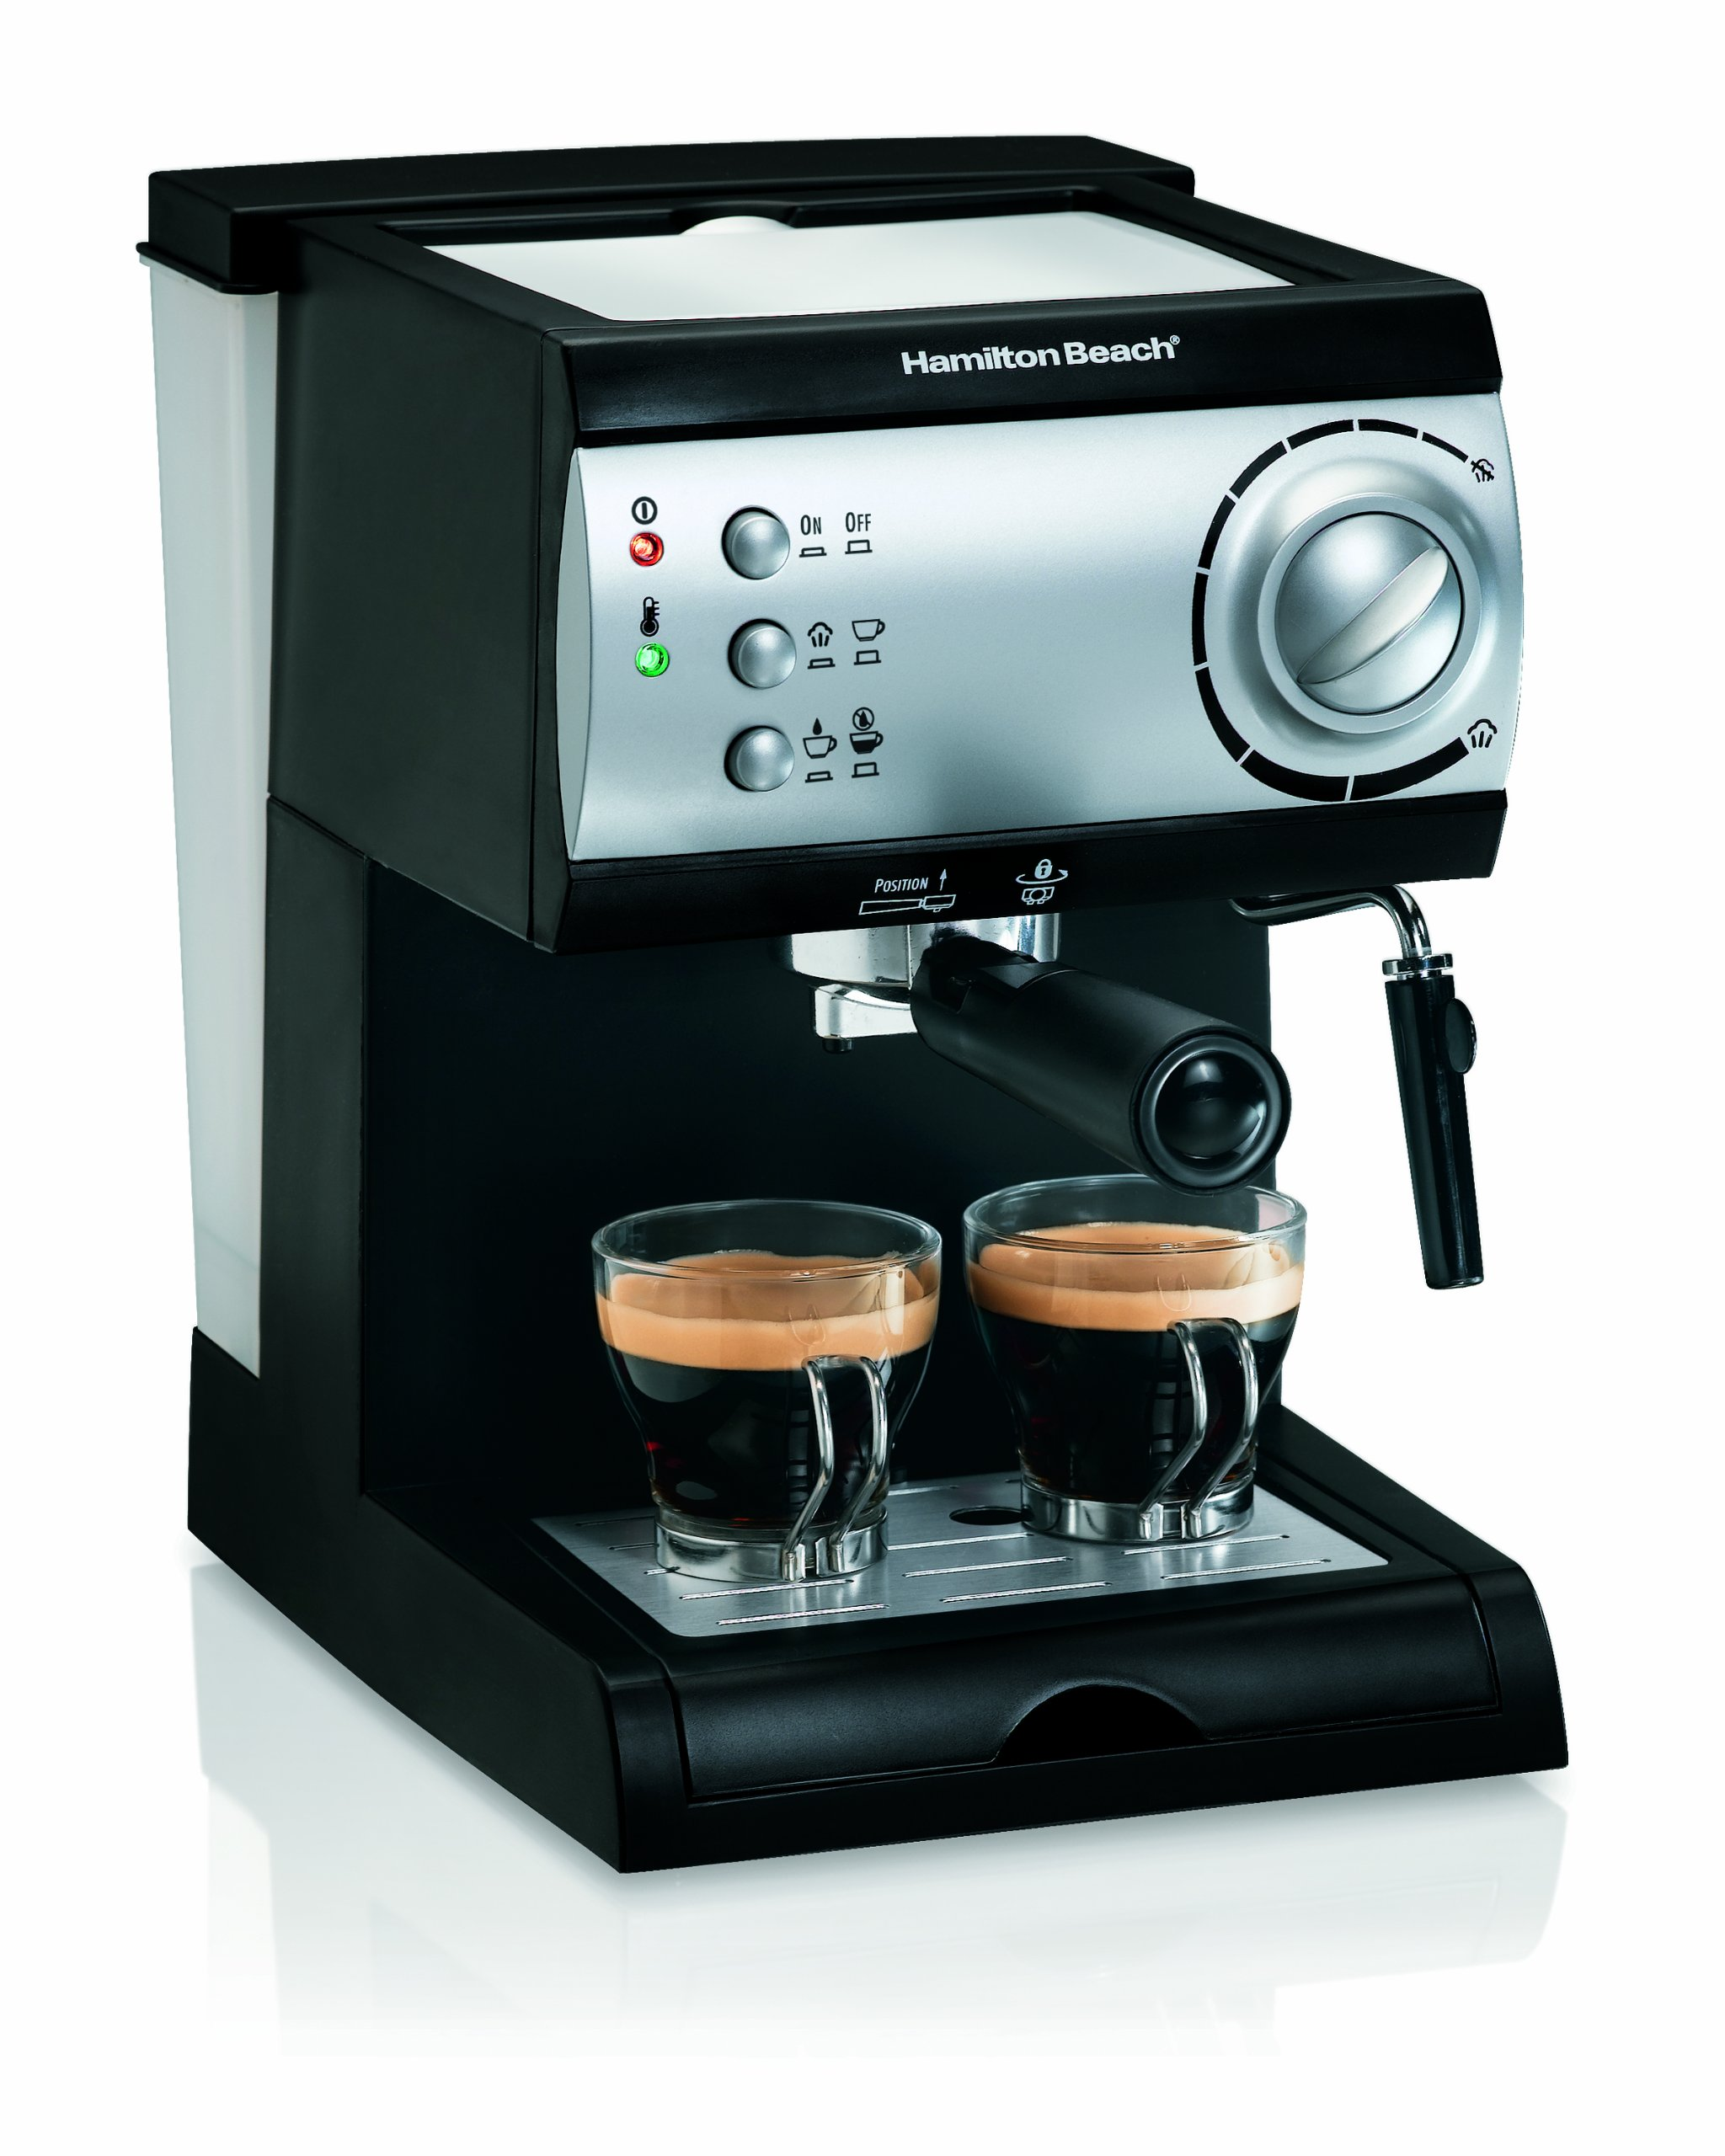 Espresso maker coffee machine hamilton beach coffeemaker New coffee machine